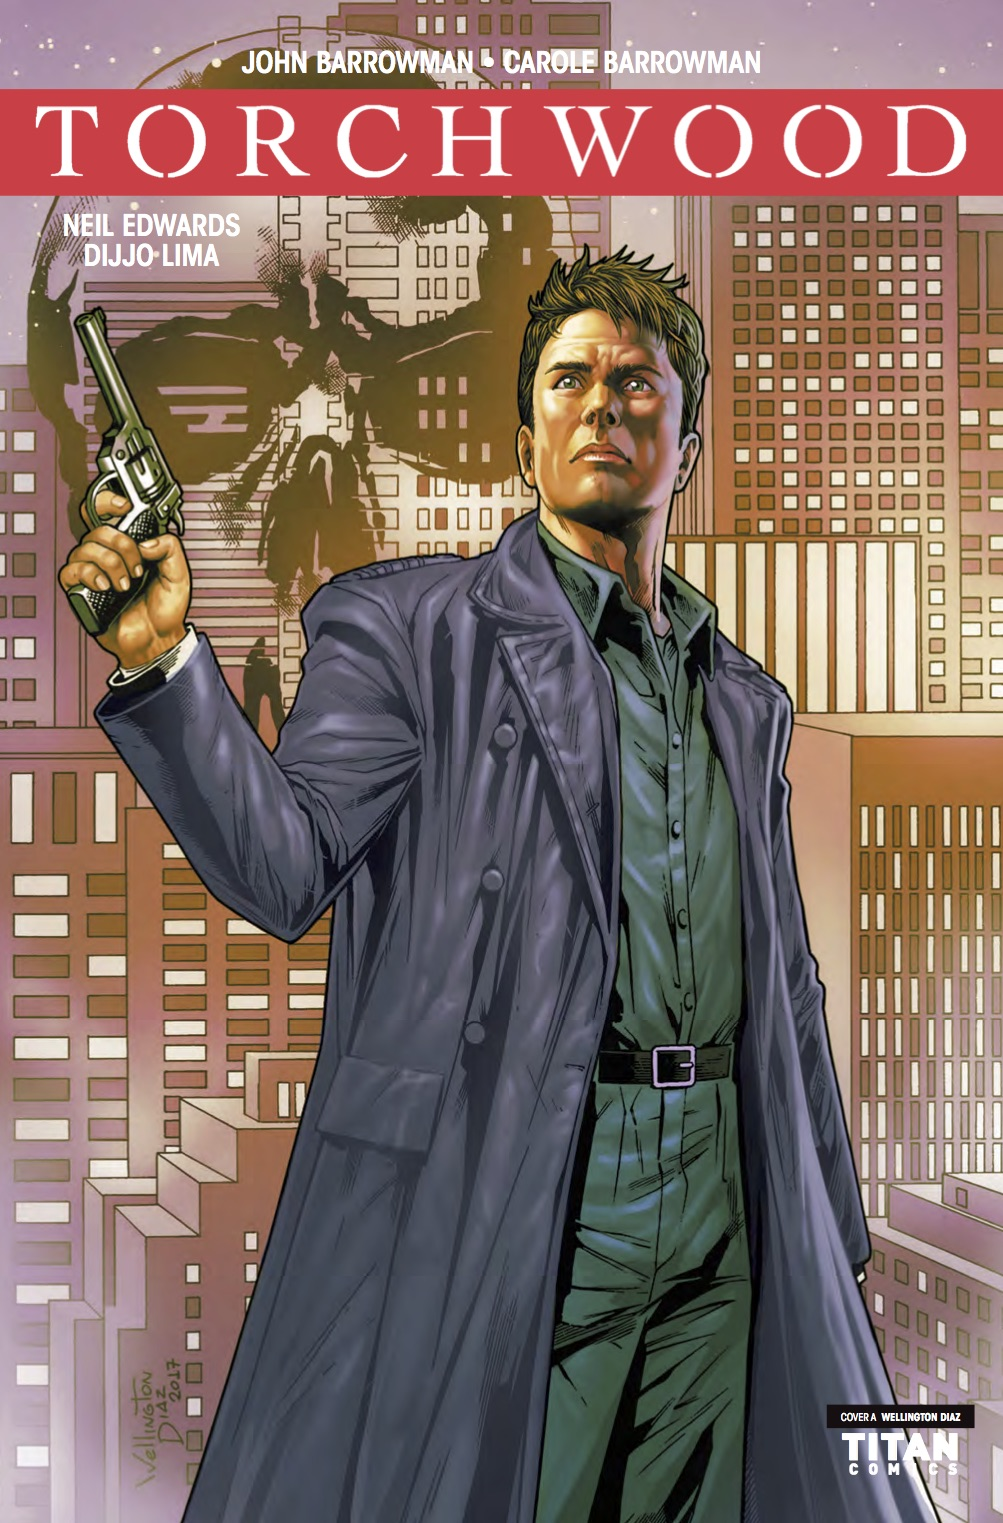 Torchwood #3 - Cover A (Credit: Titan )